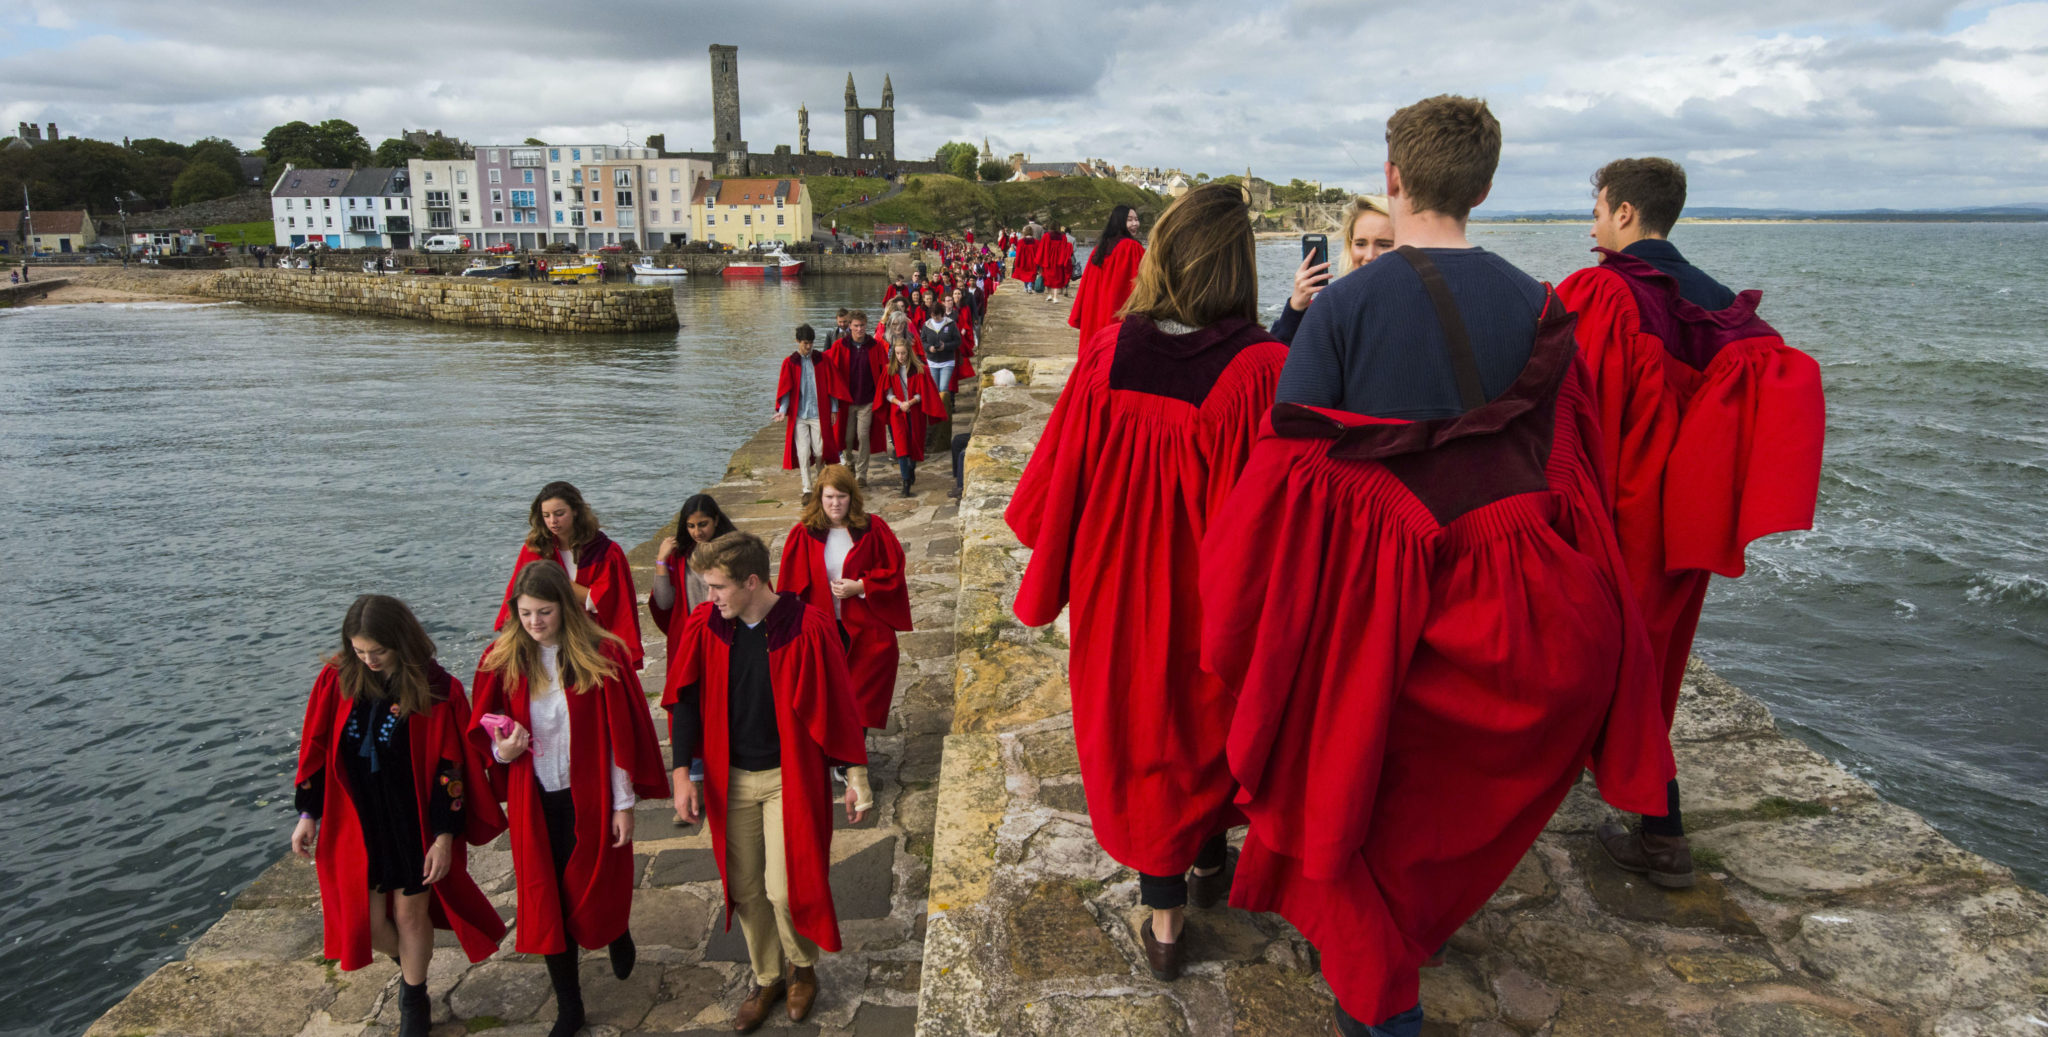 University-of-St-Andrews-plans-'phased'-return-to-in-person-teaching